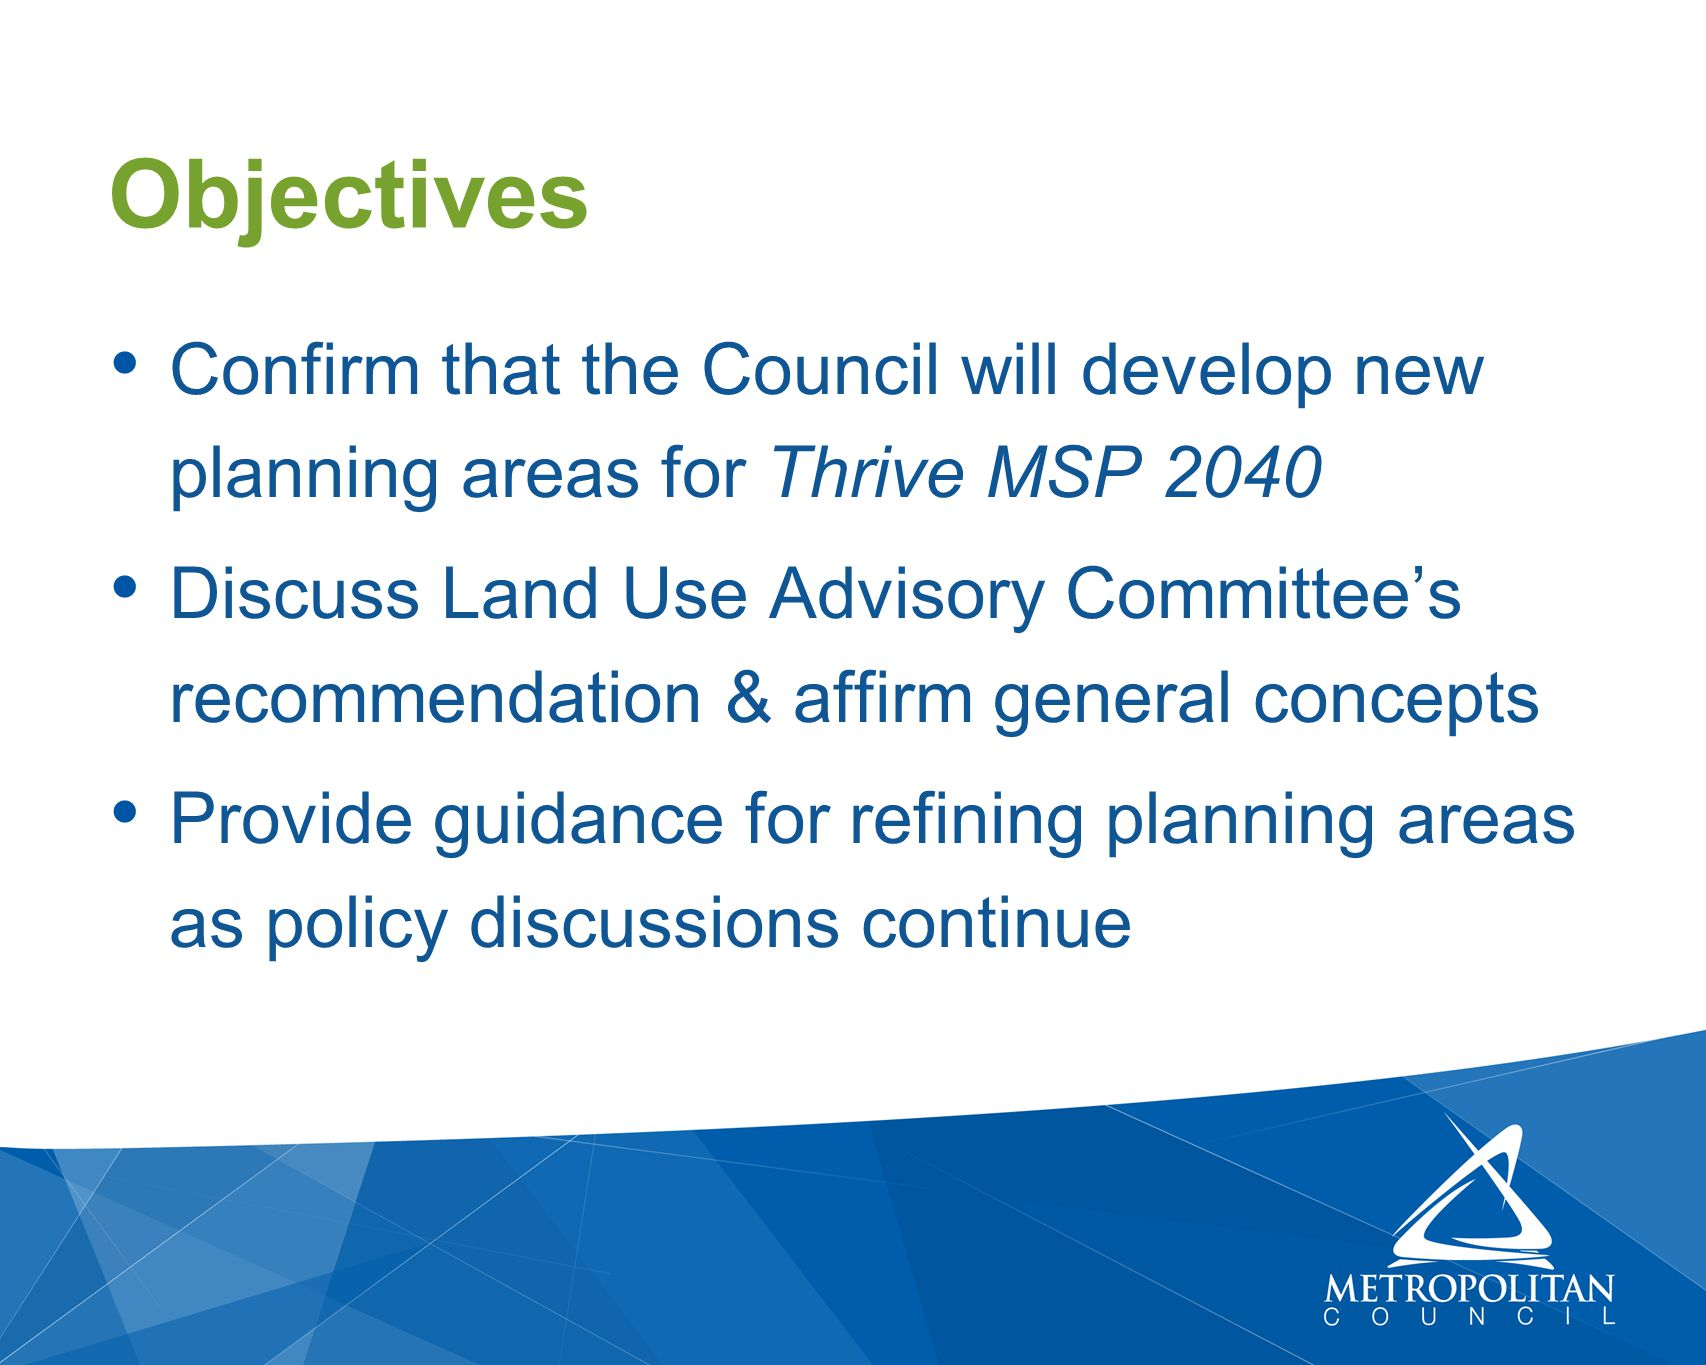 Confirm that the Council will develop new planning areas for Thrive MSP 2040 Discuss Land Use Advisory Committee's recommendation & affirm general concepts Provide guidance for refining planning areas as policy discussions continue Objectives